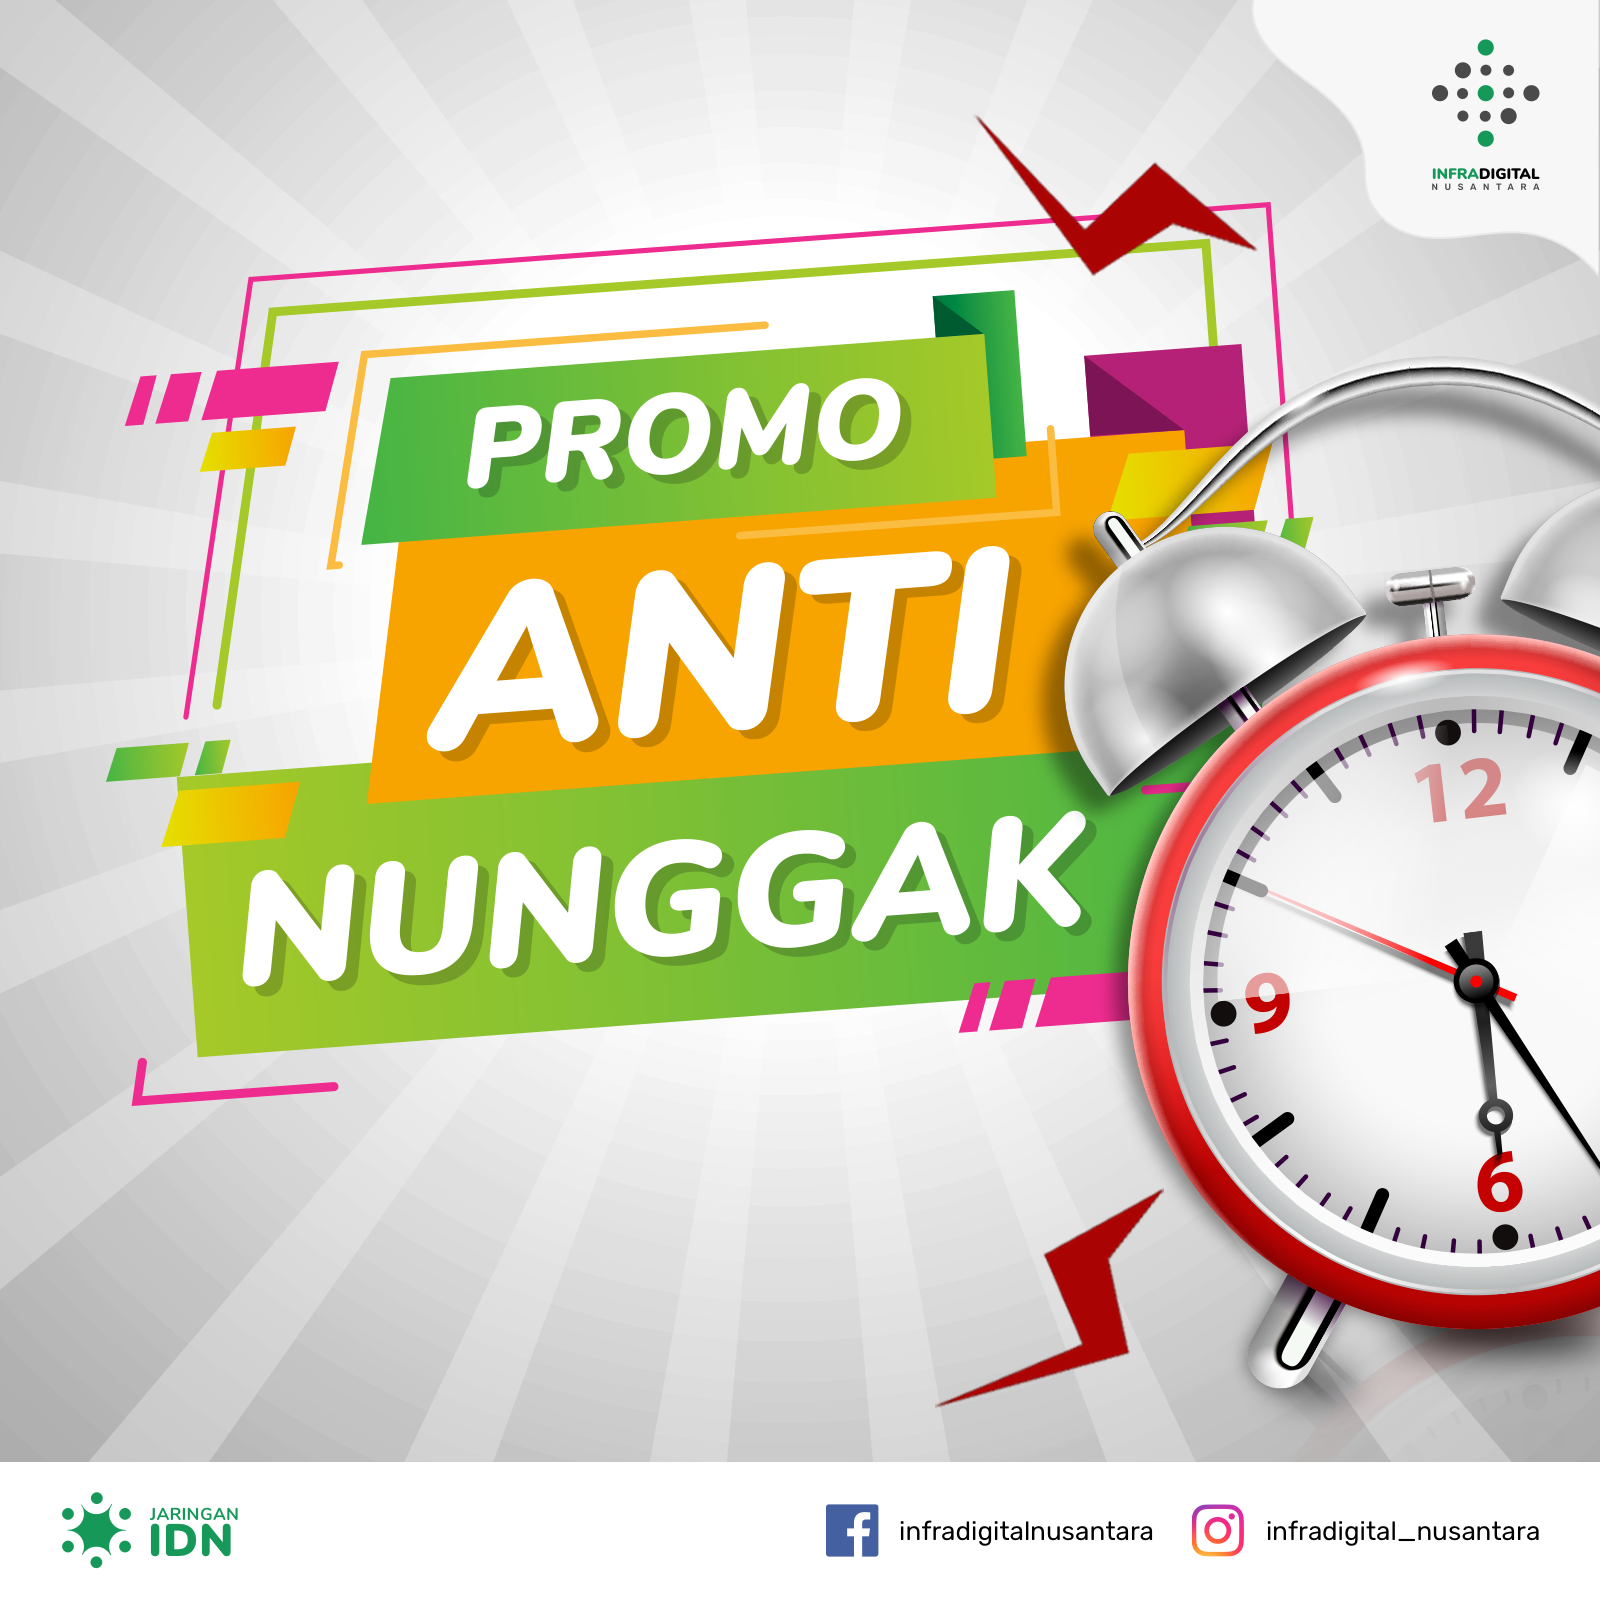 Promo-anti-nunggak-IG-01-revisi